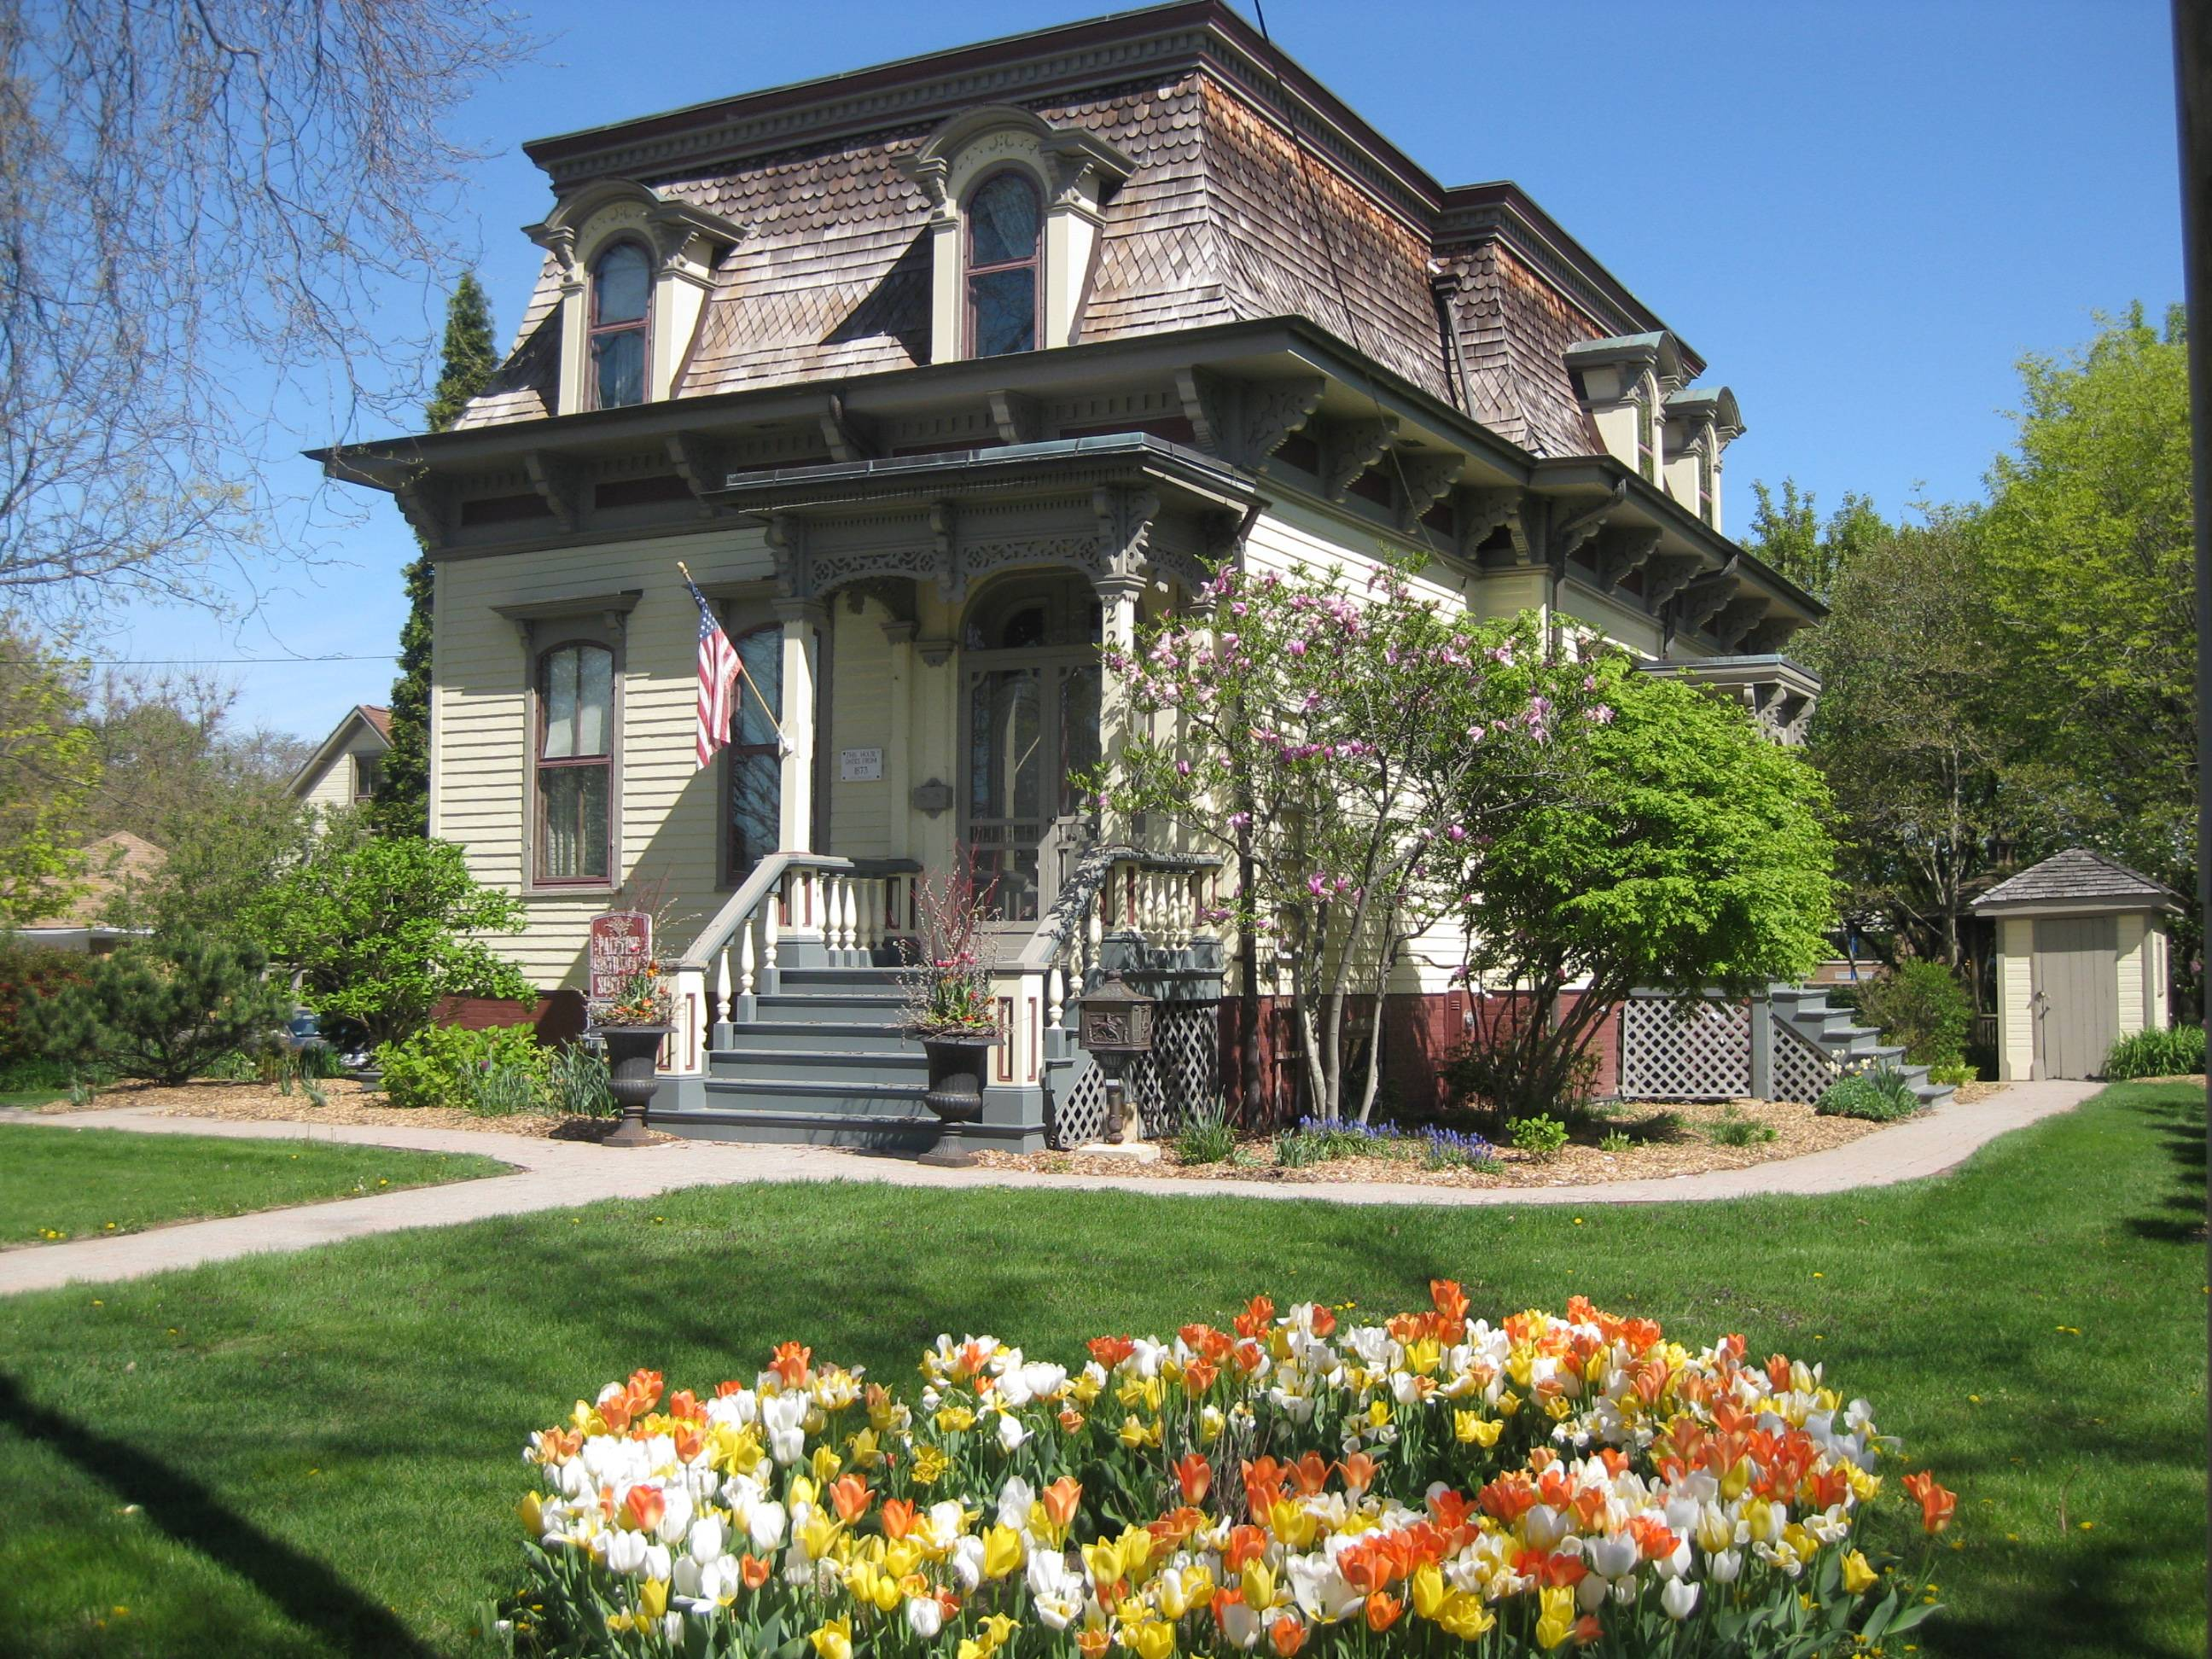 The George S. Clayson house, home of the Palatine Historical Society, dates from 1873.